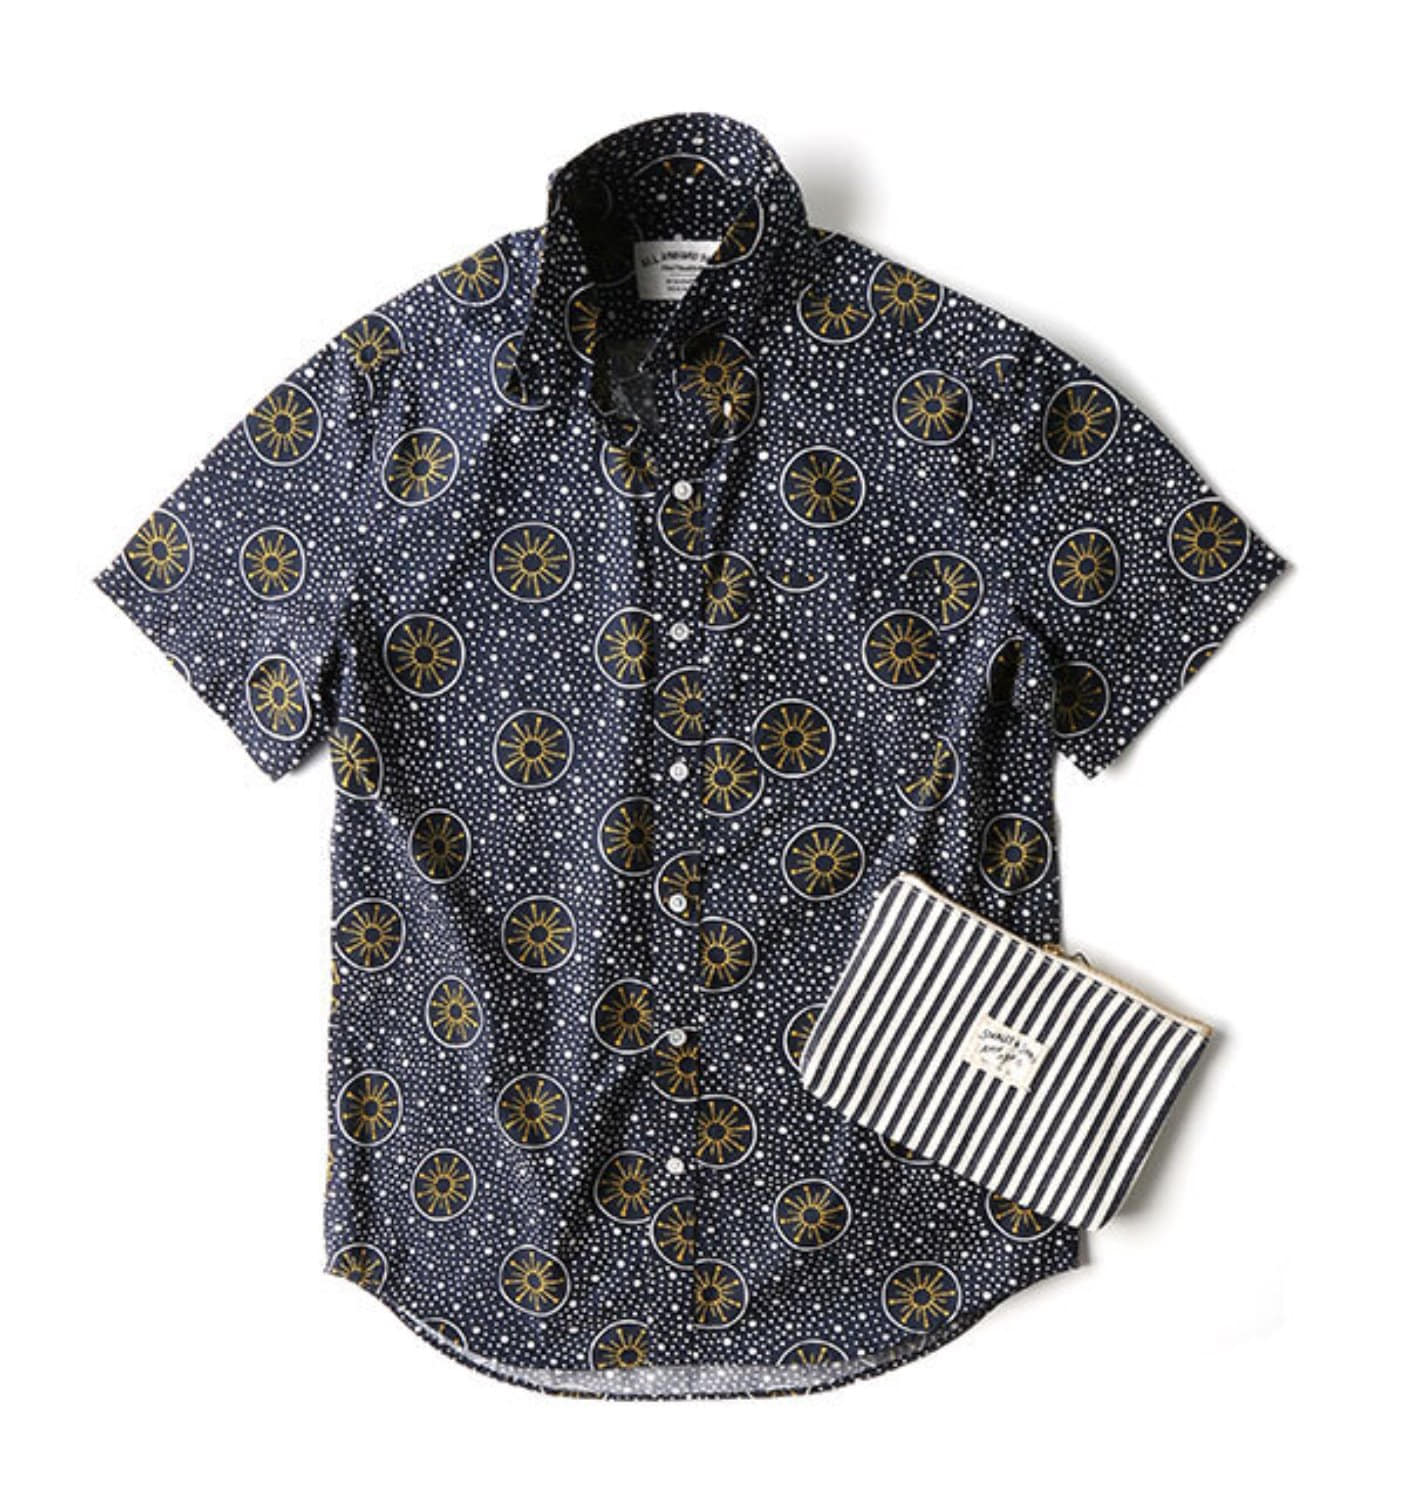 BAS01 NAVY/YELLOW COSMIC SHIRT